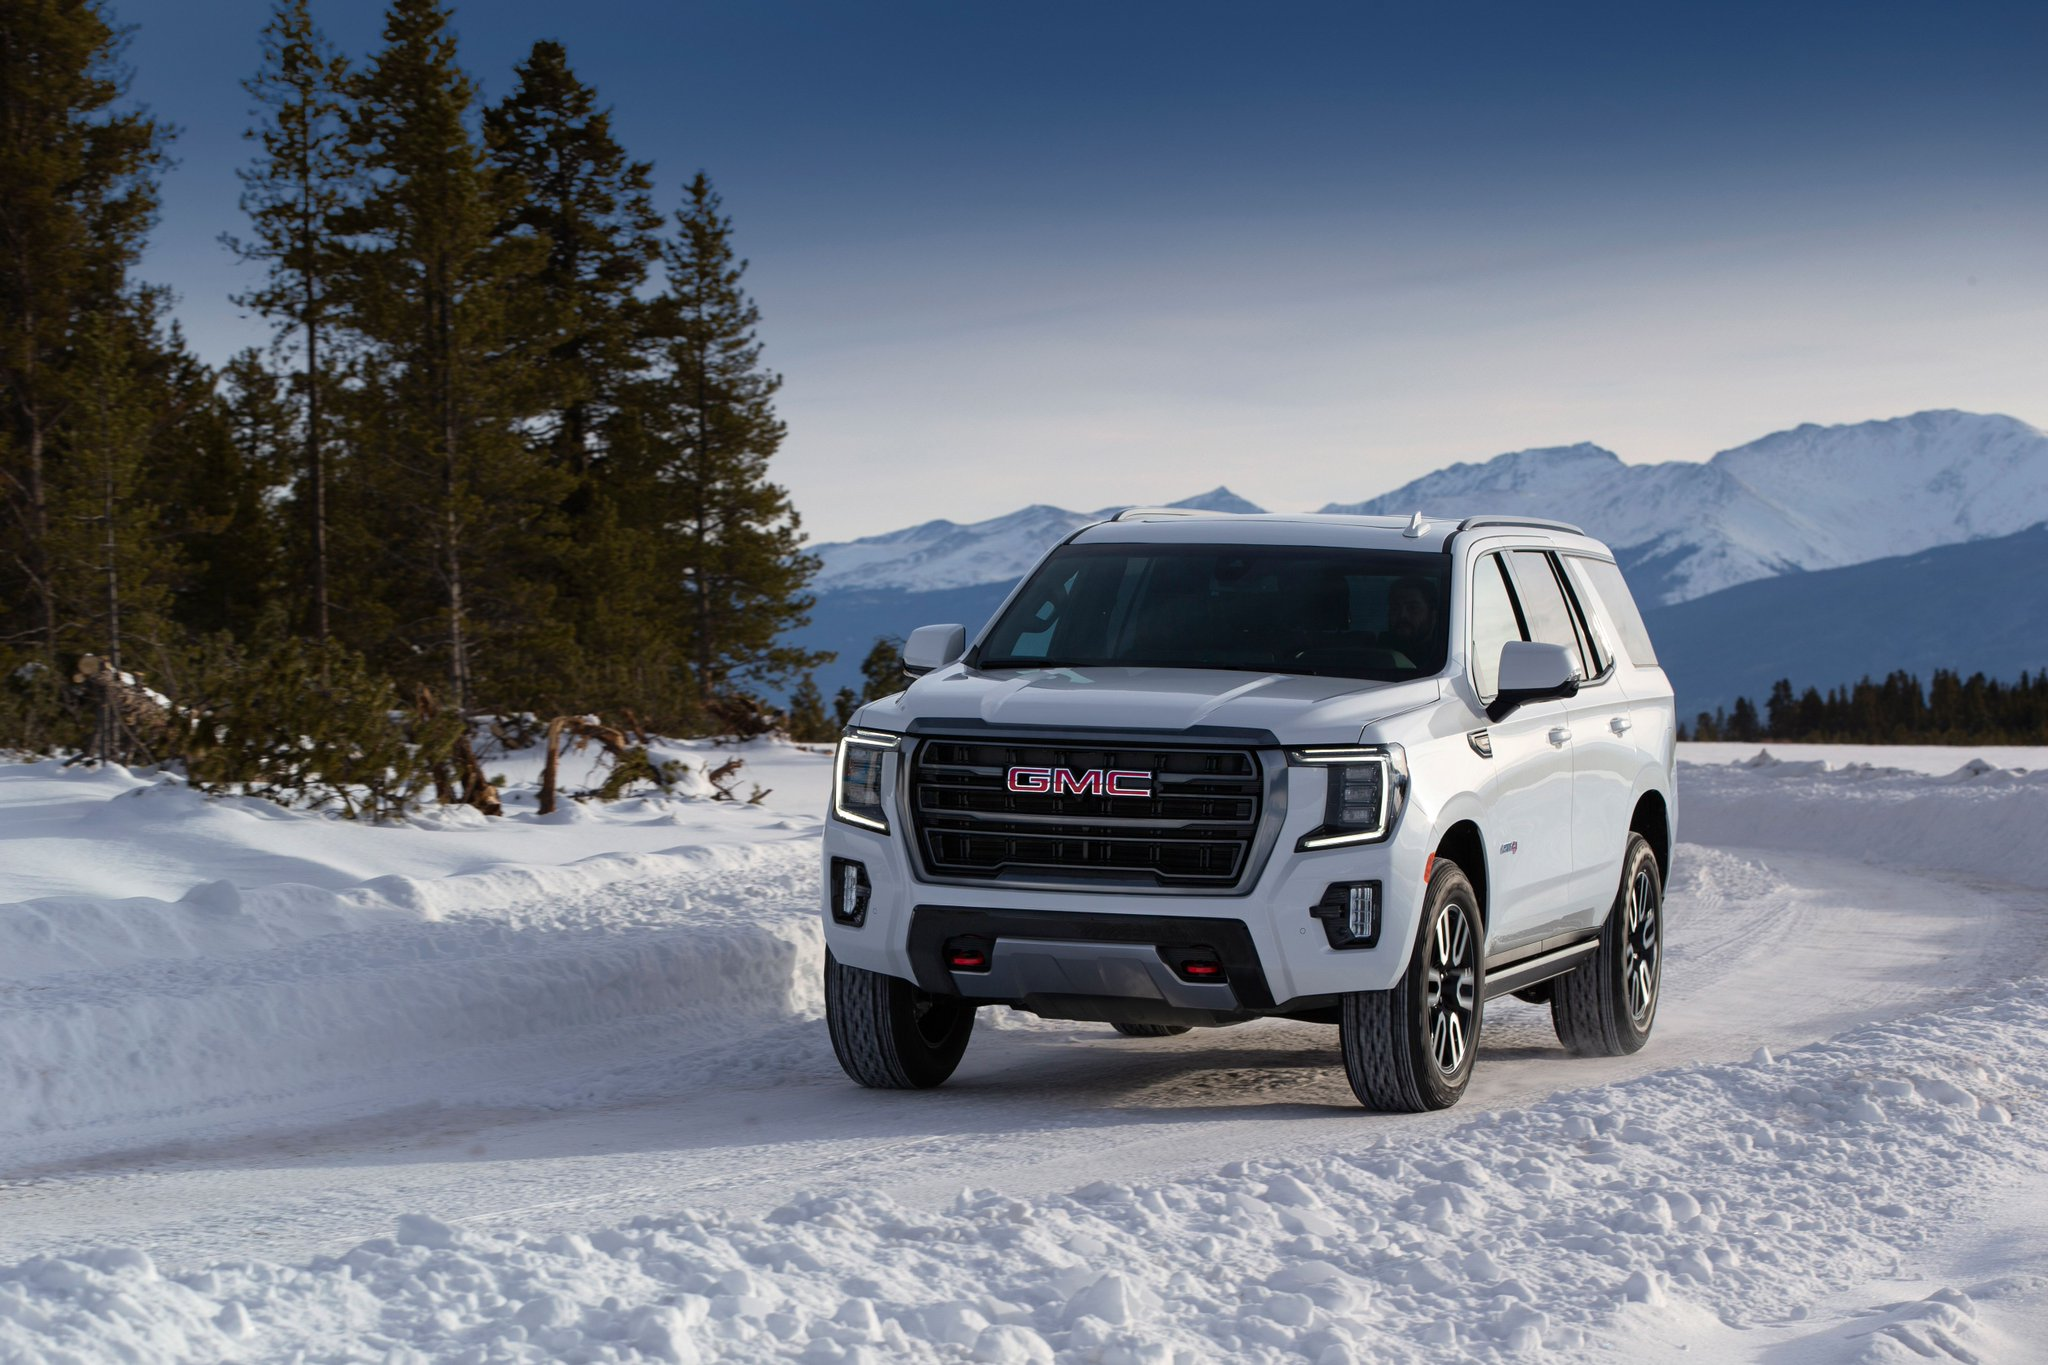 Car And Driver On Twitter New 2021 Gmc Yukon Yukon Xl Get At4 Off Road Trim And A Diesel Engine Https T Co Twe0kpjccw